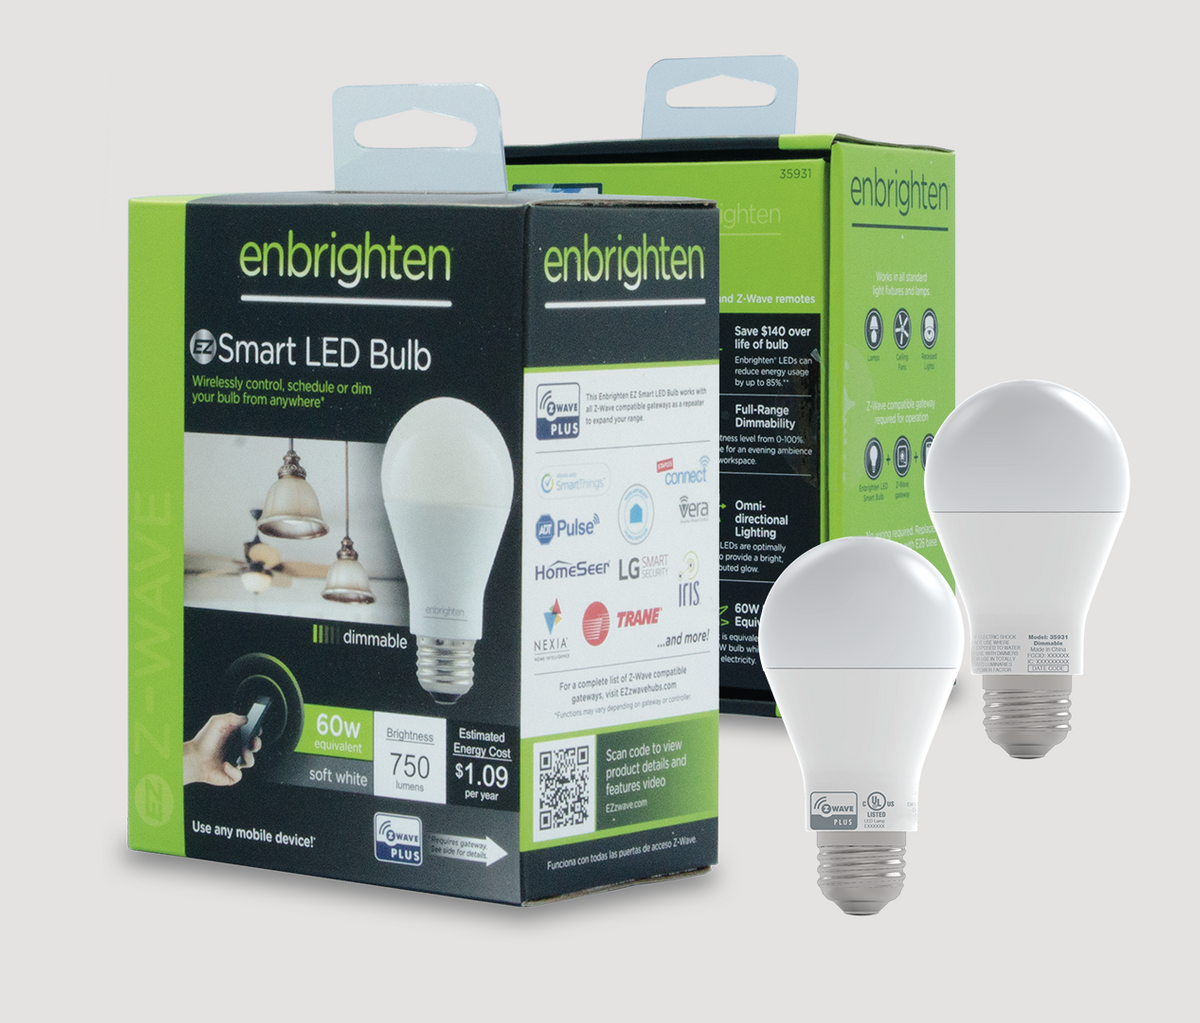 Navigate to Project Enbrighten Smart LED Bulbs